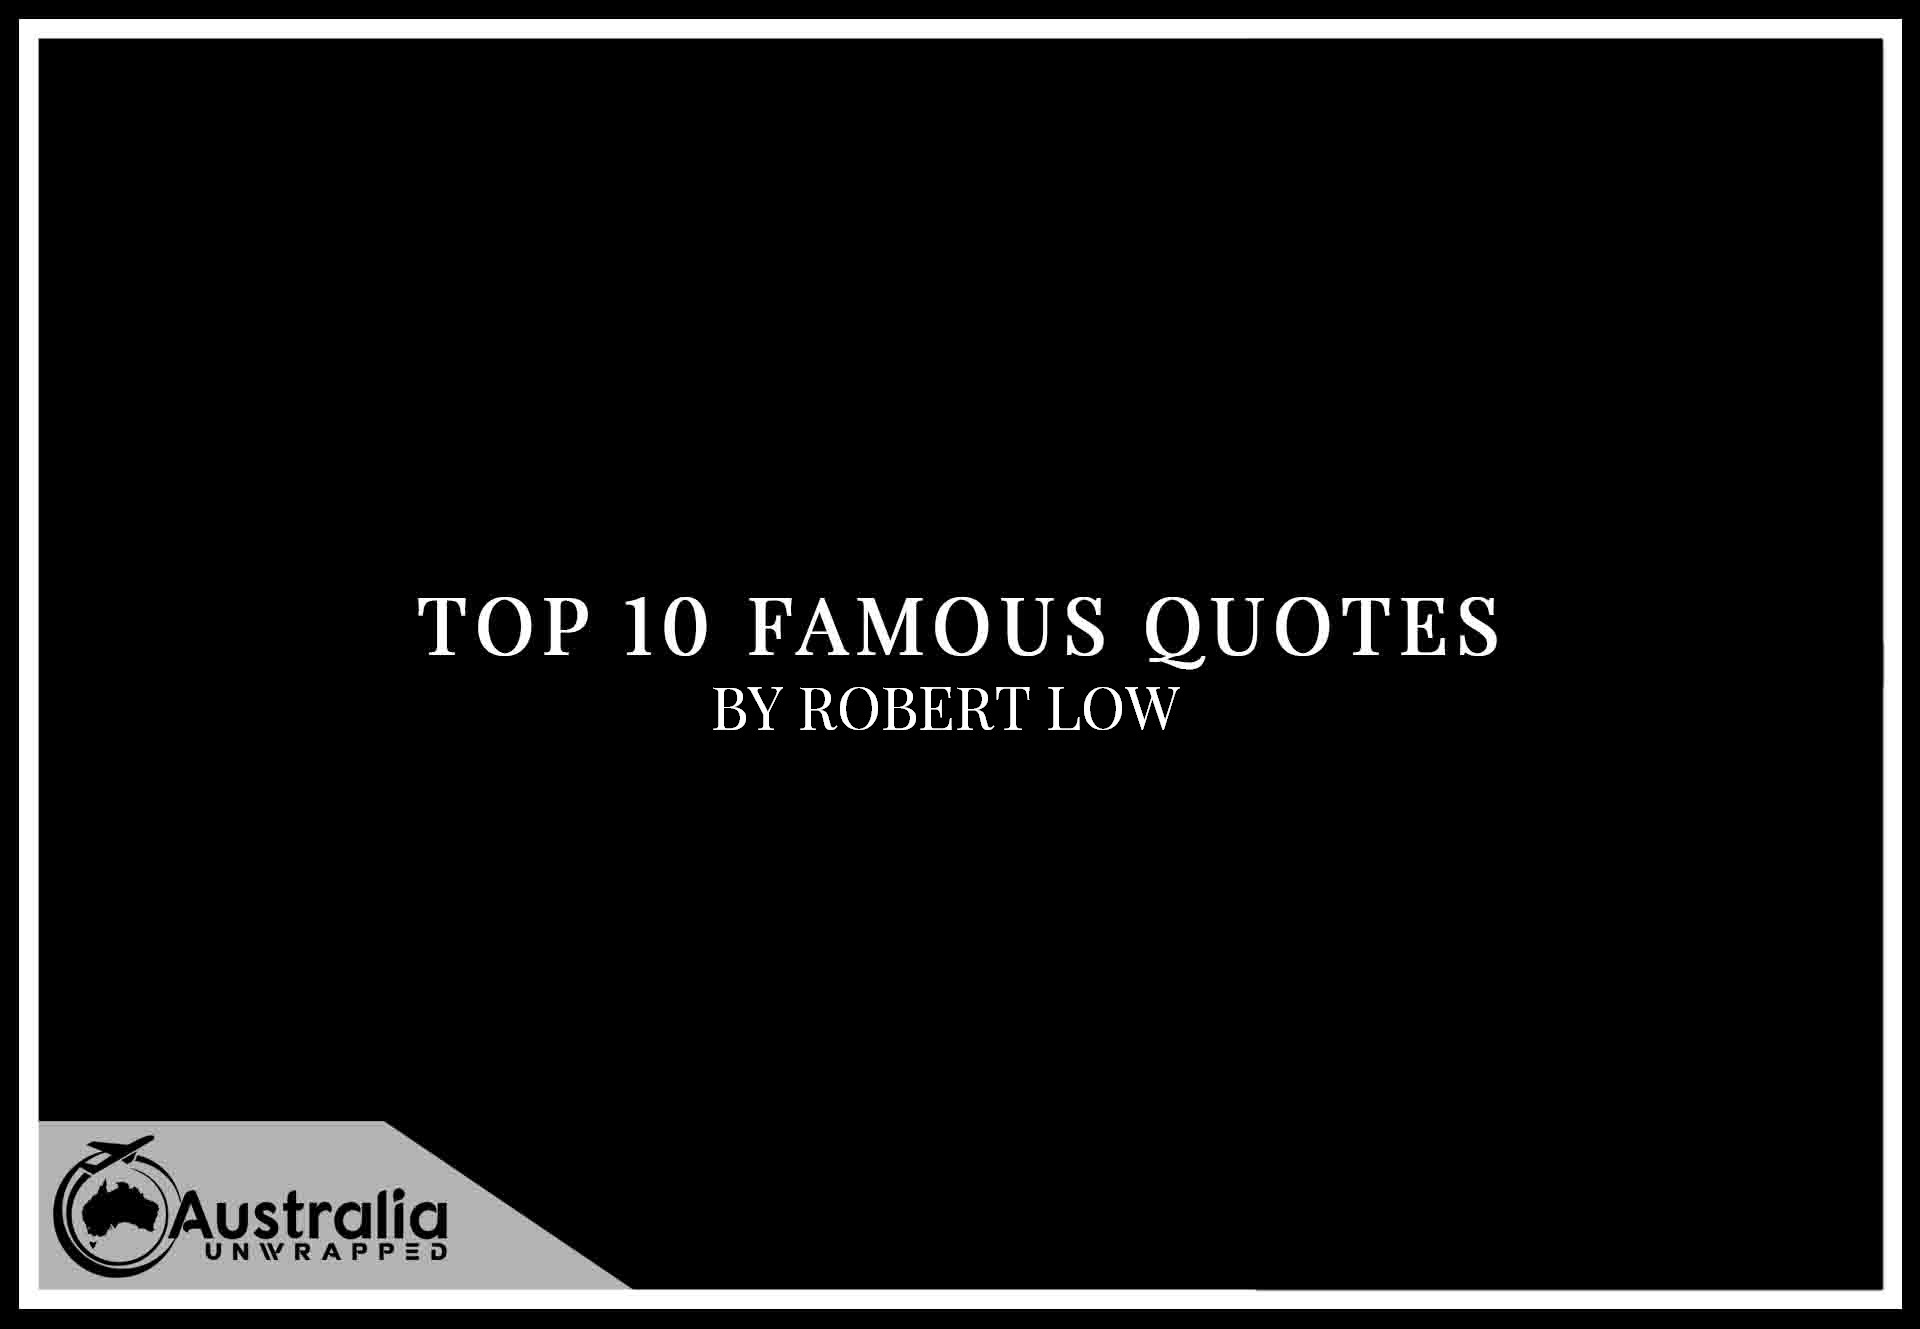 Top 10 Famous Quotes by Author Robert Low